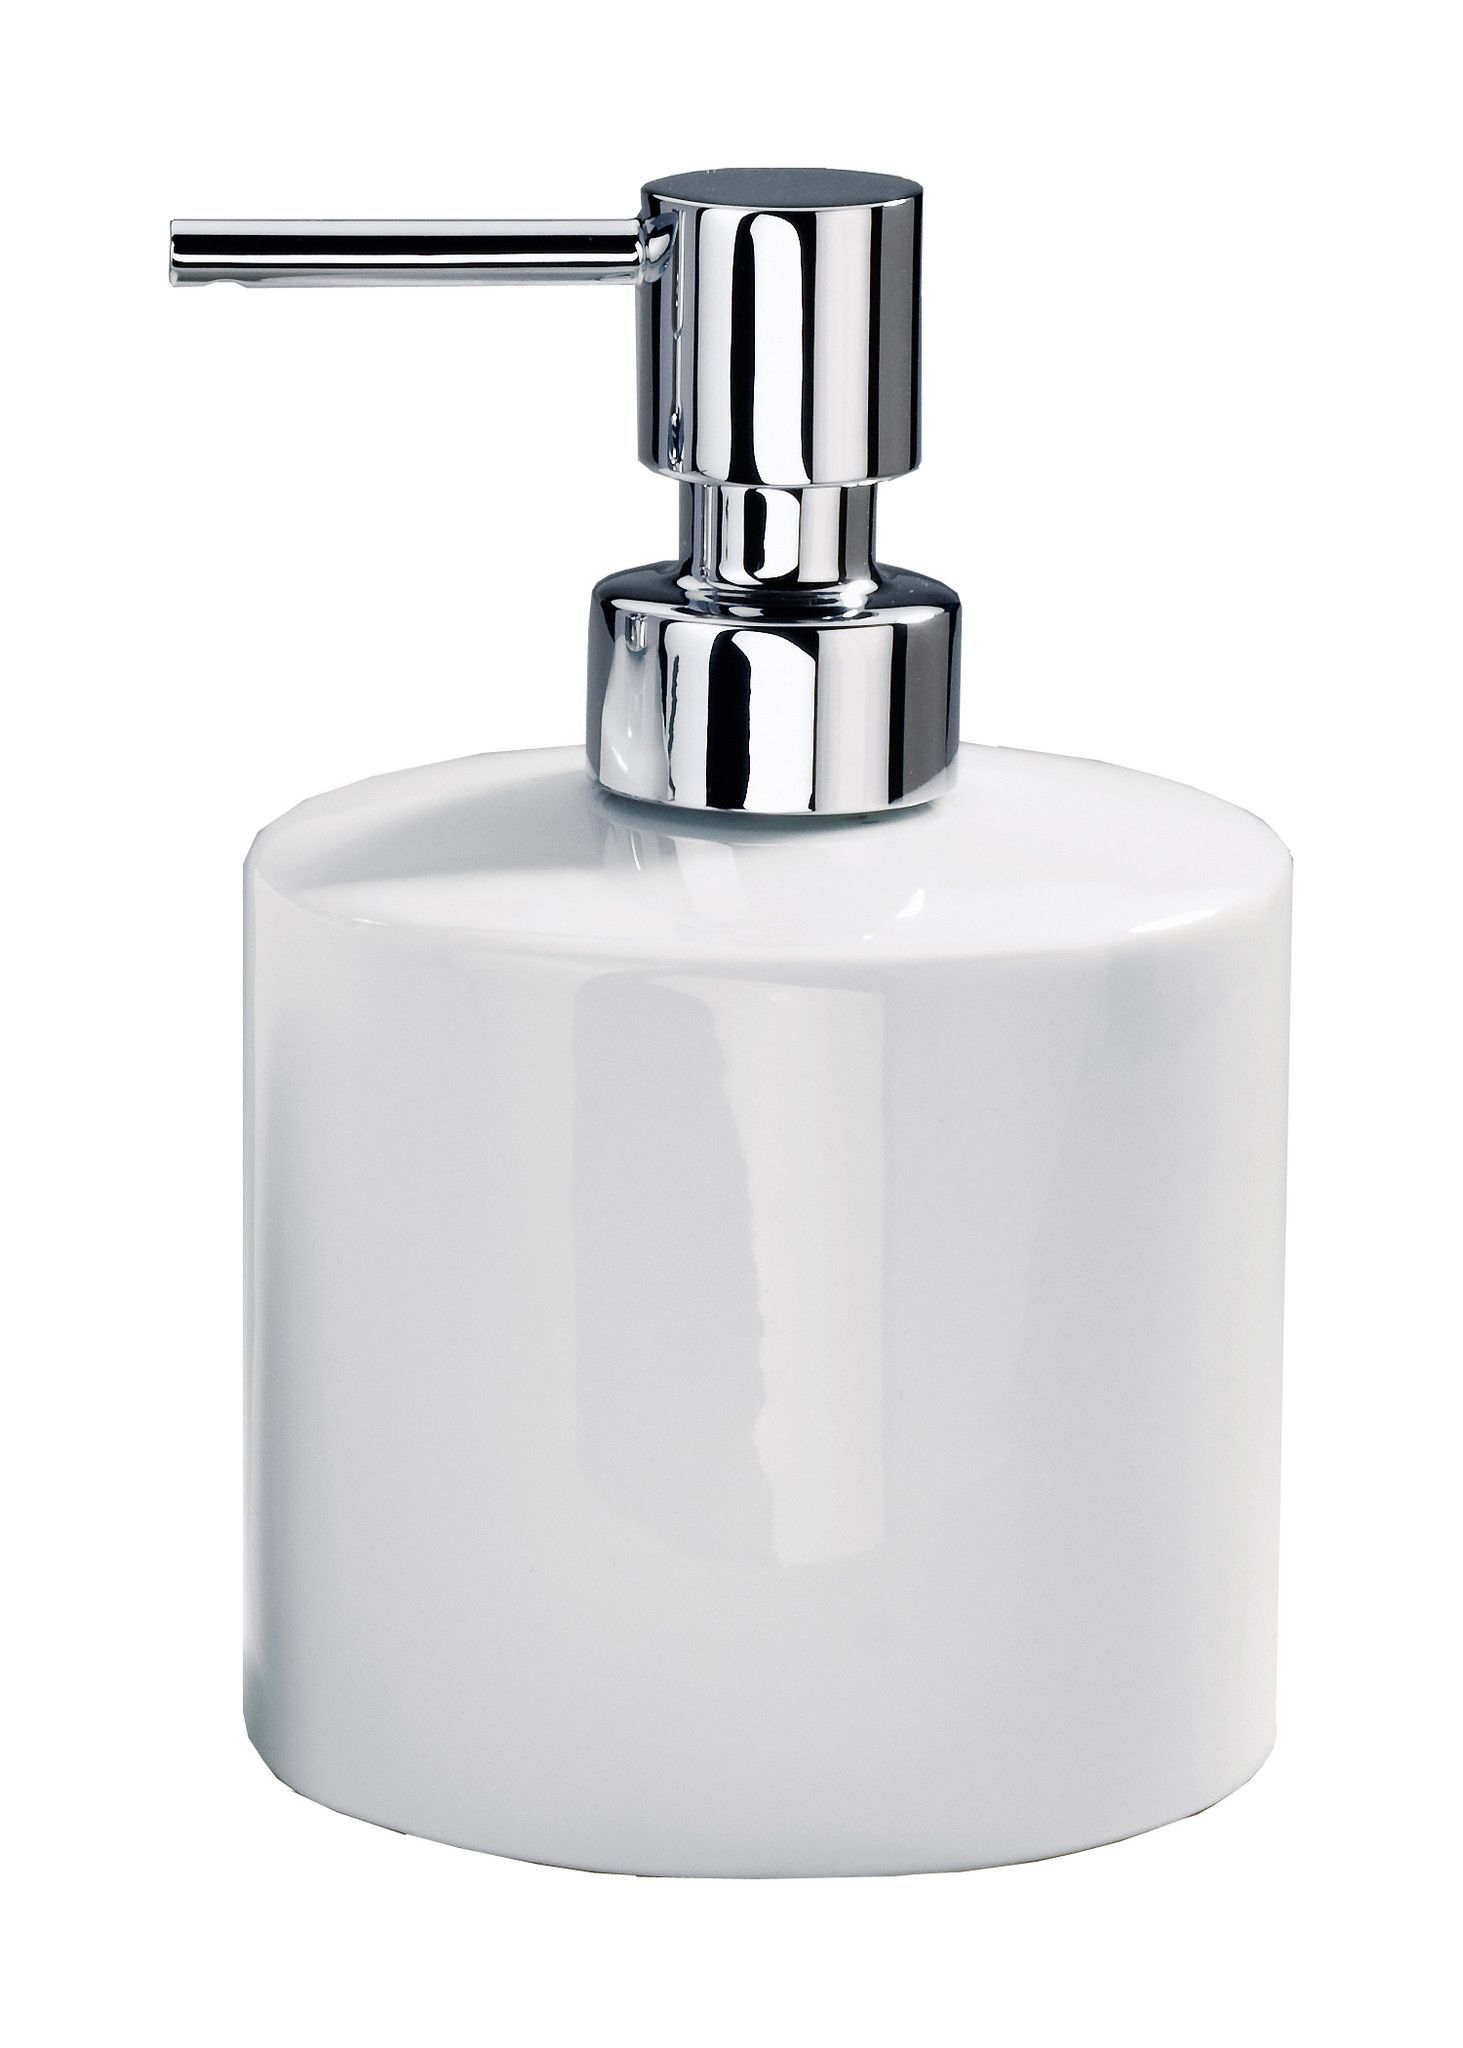 Walther Soap Lotion Dispenser Pump For Kitchen Bathroom Countertops Porcelain